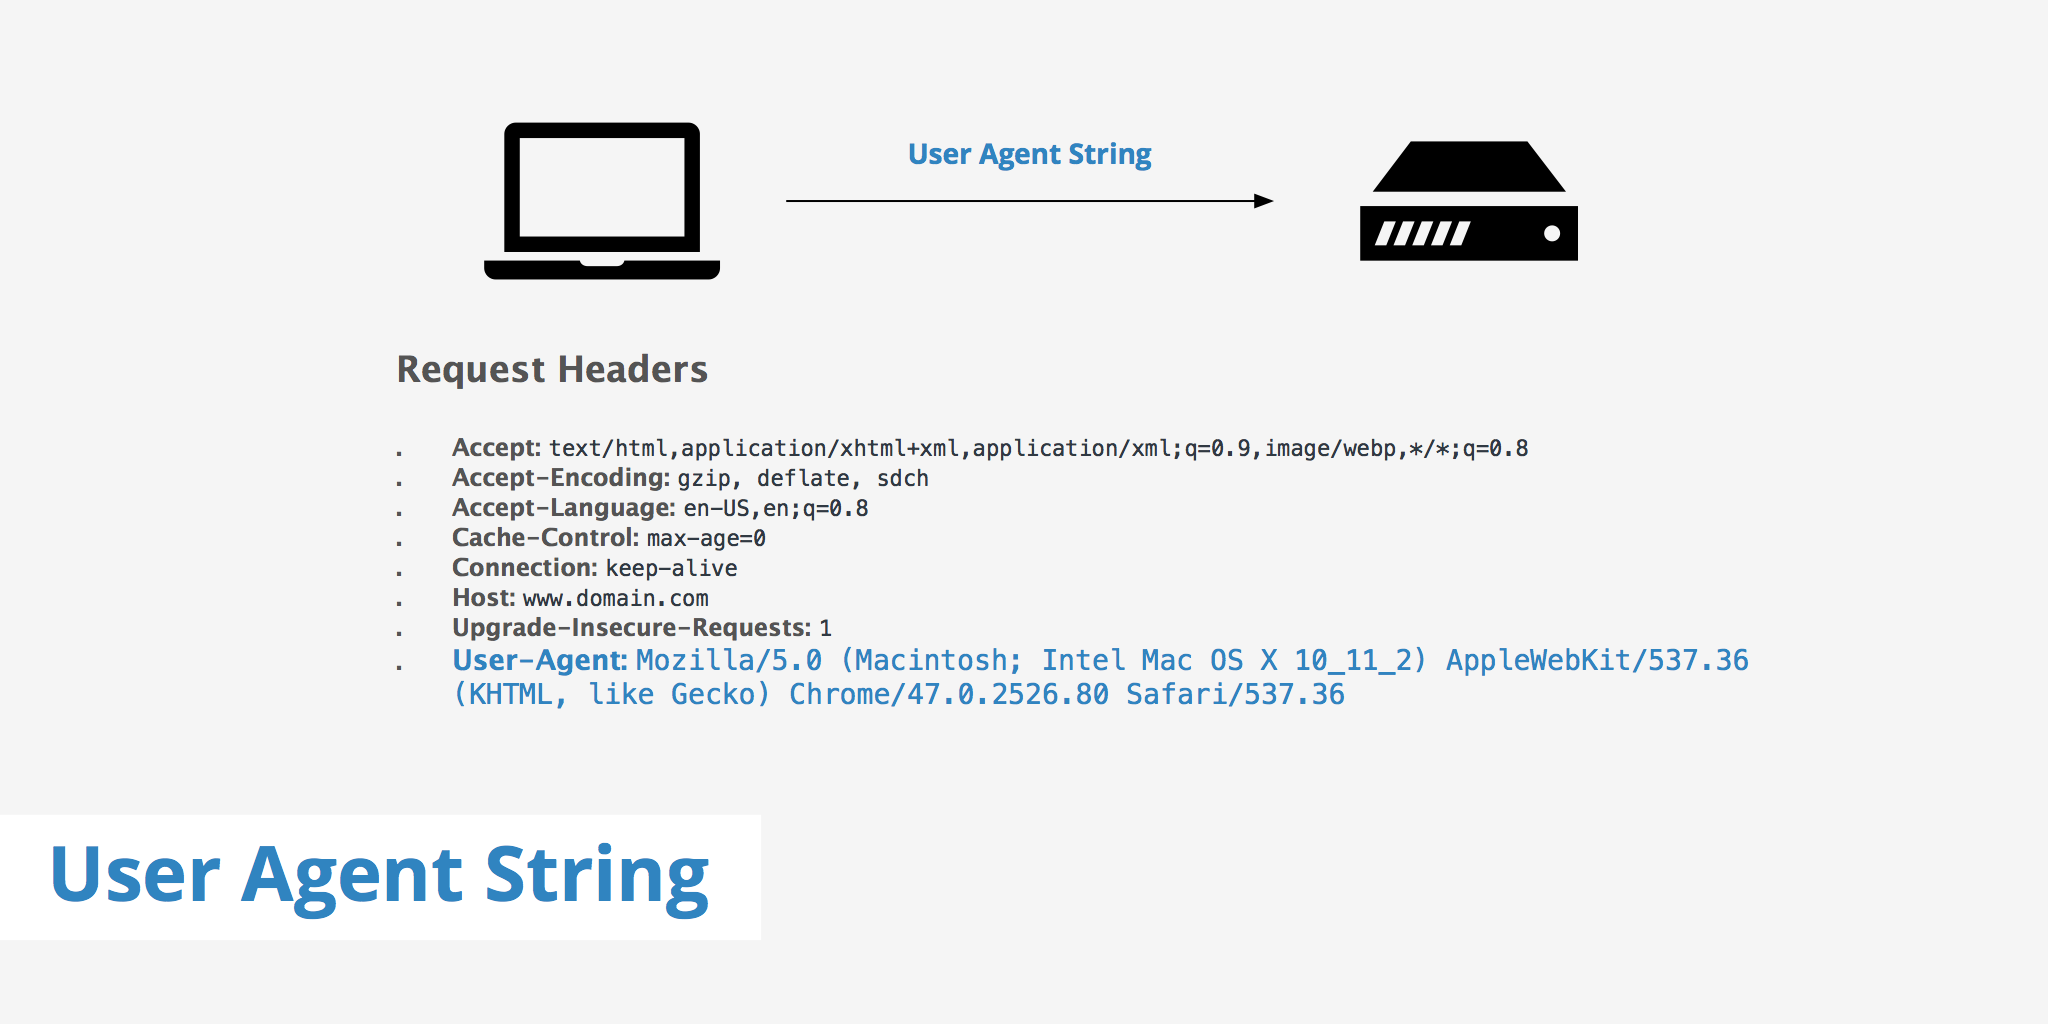 User Agent String - KeyCDN Support